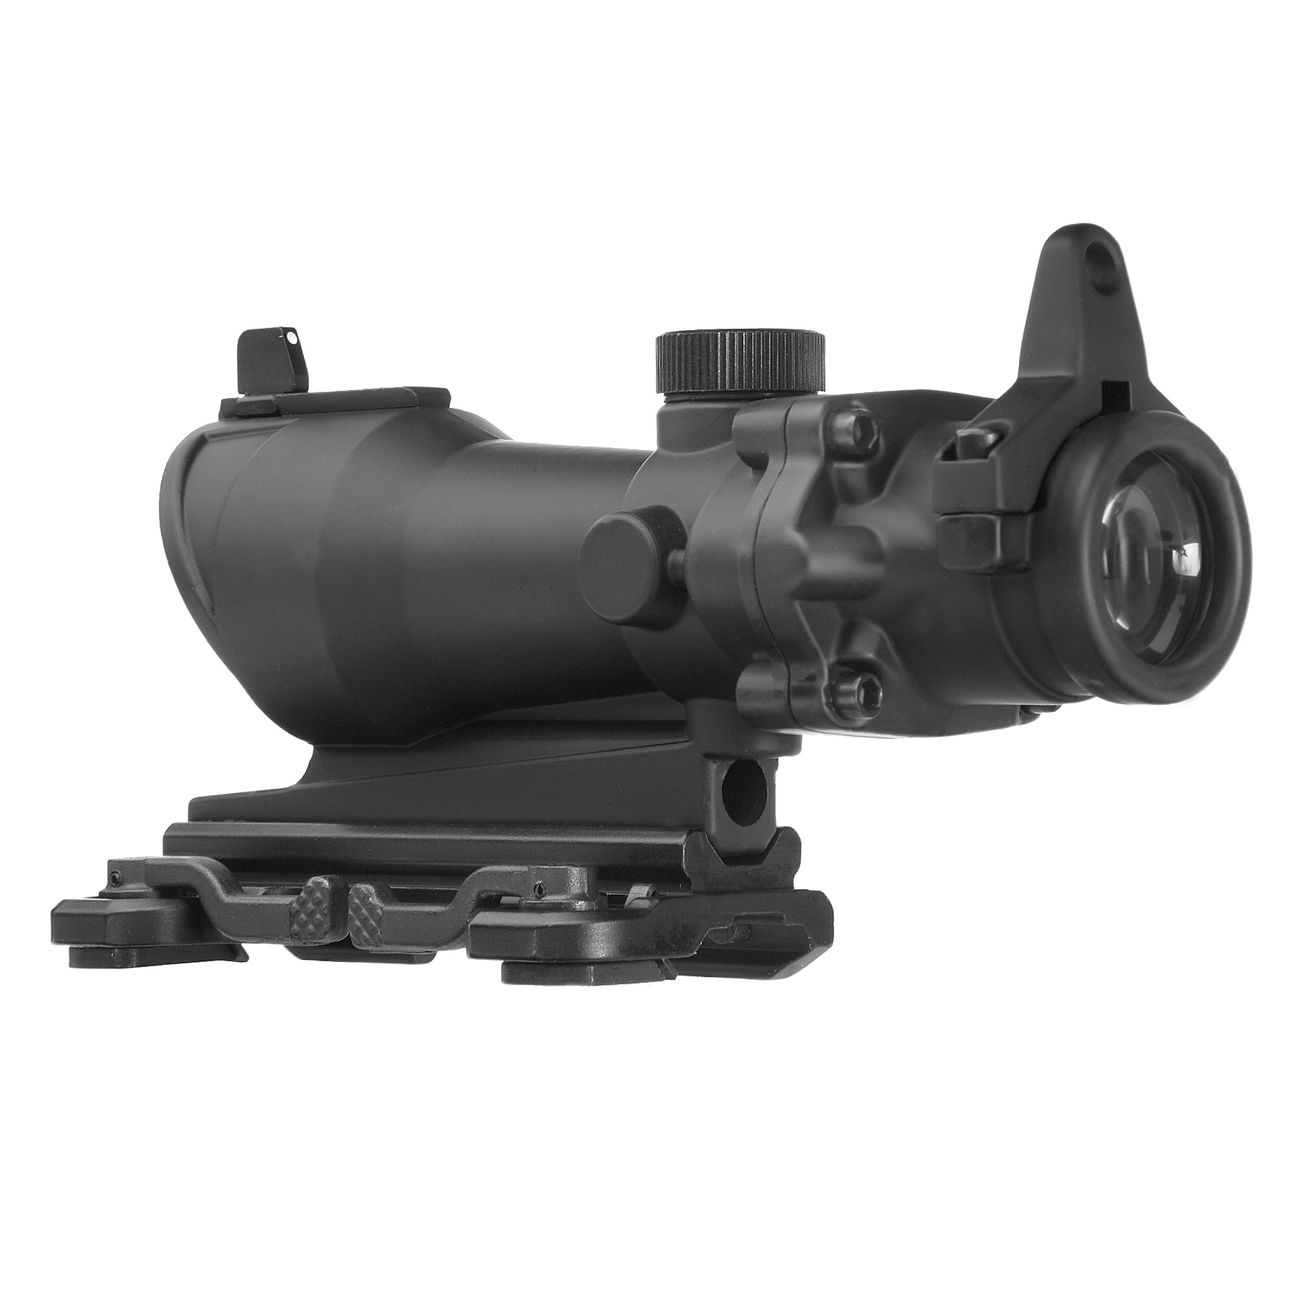 Aim-O TA01 Style Scope 4x32 mit QD-Mount schwarz AO 5310-BK 3